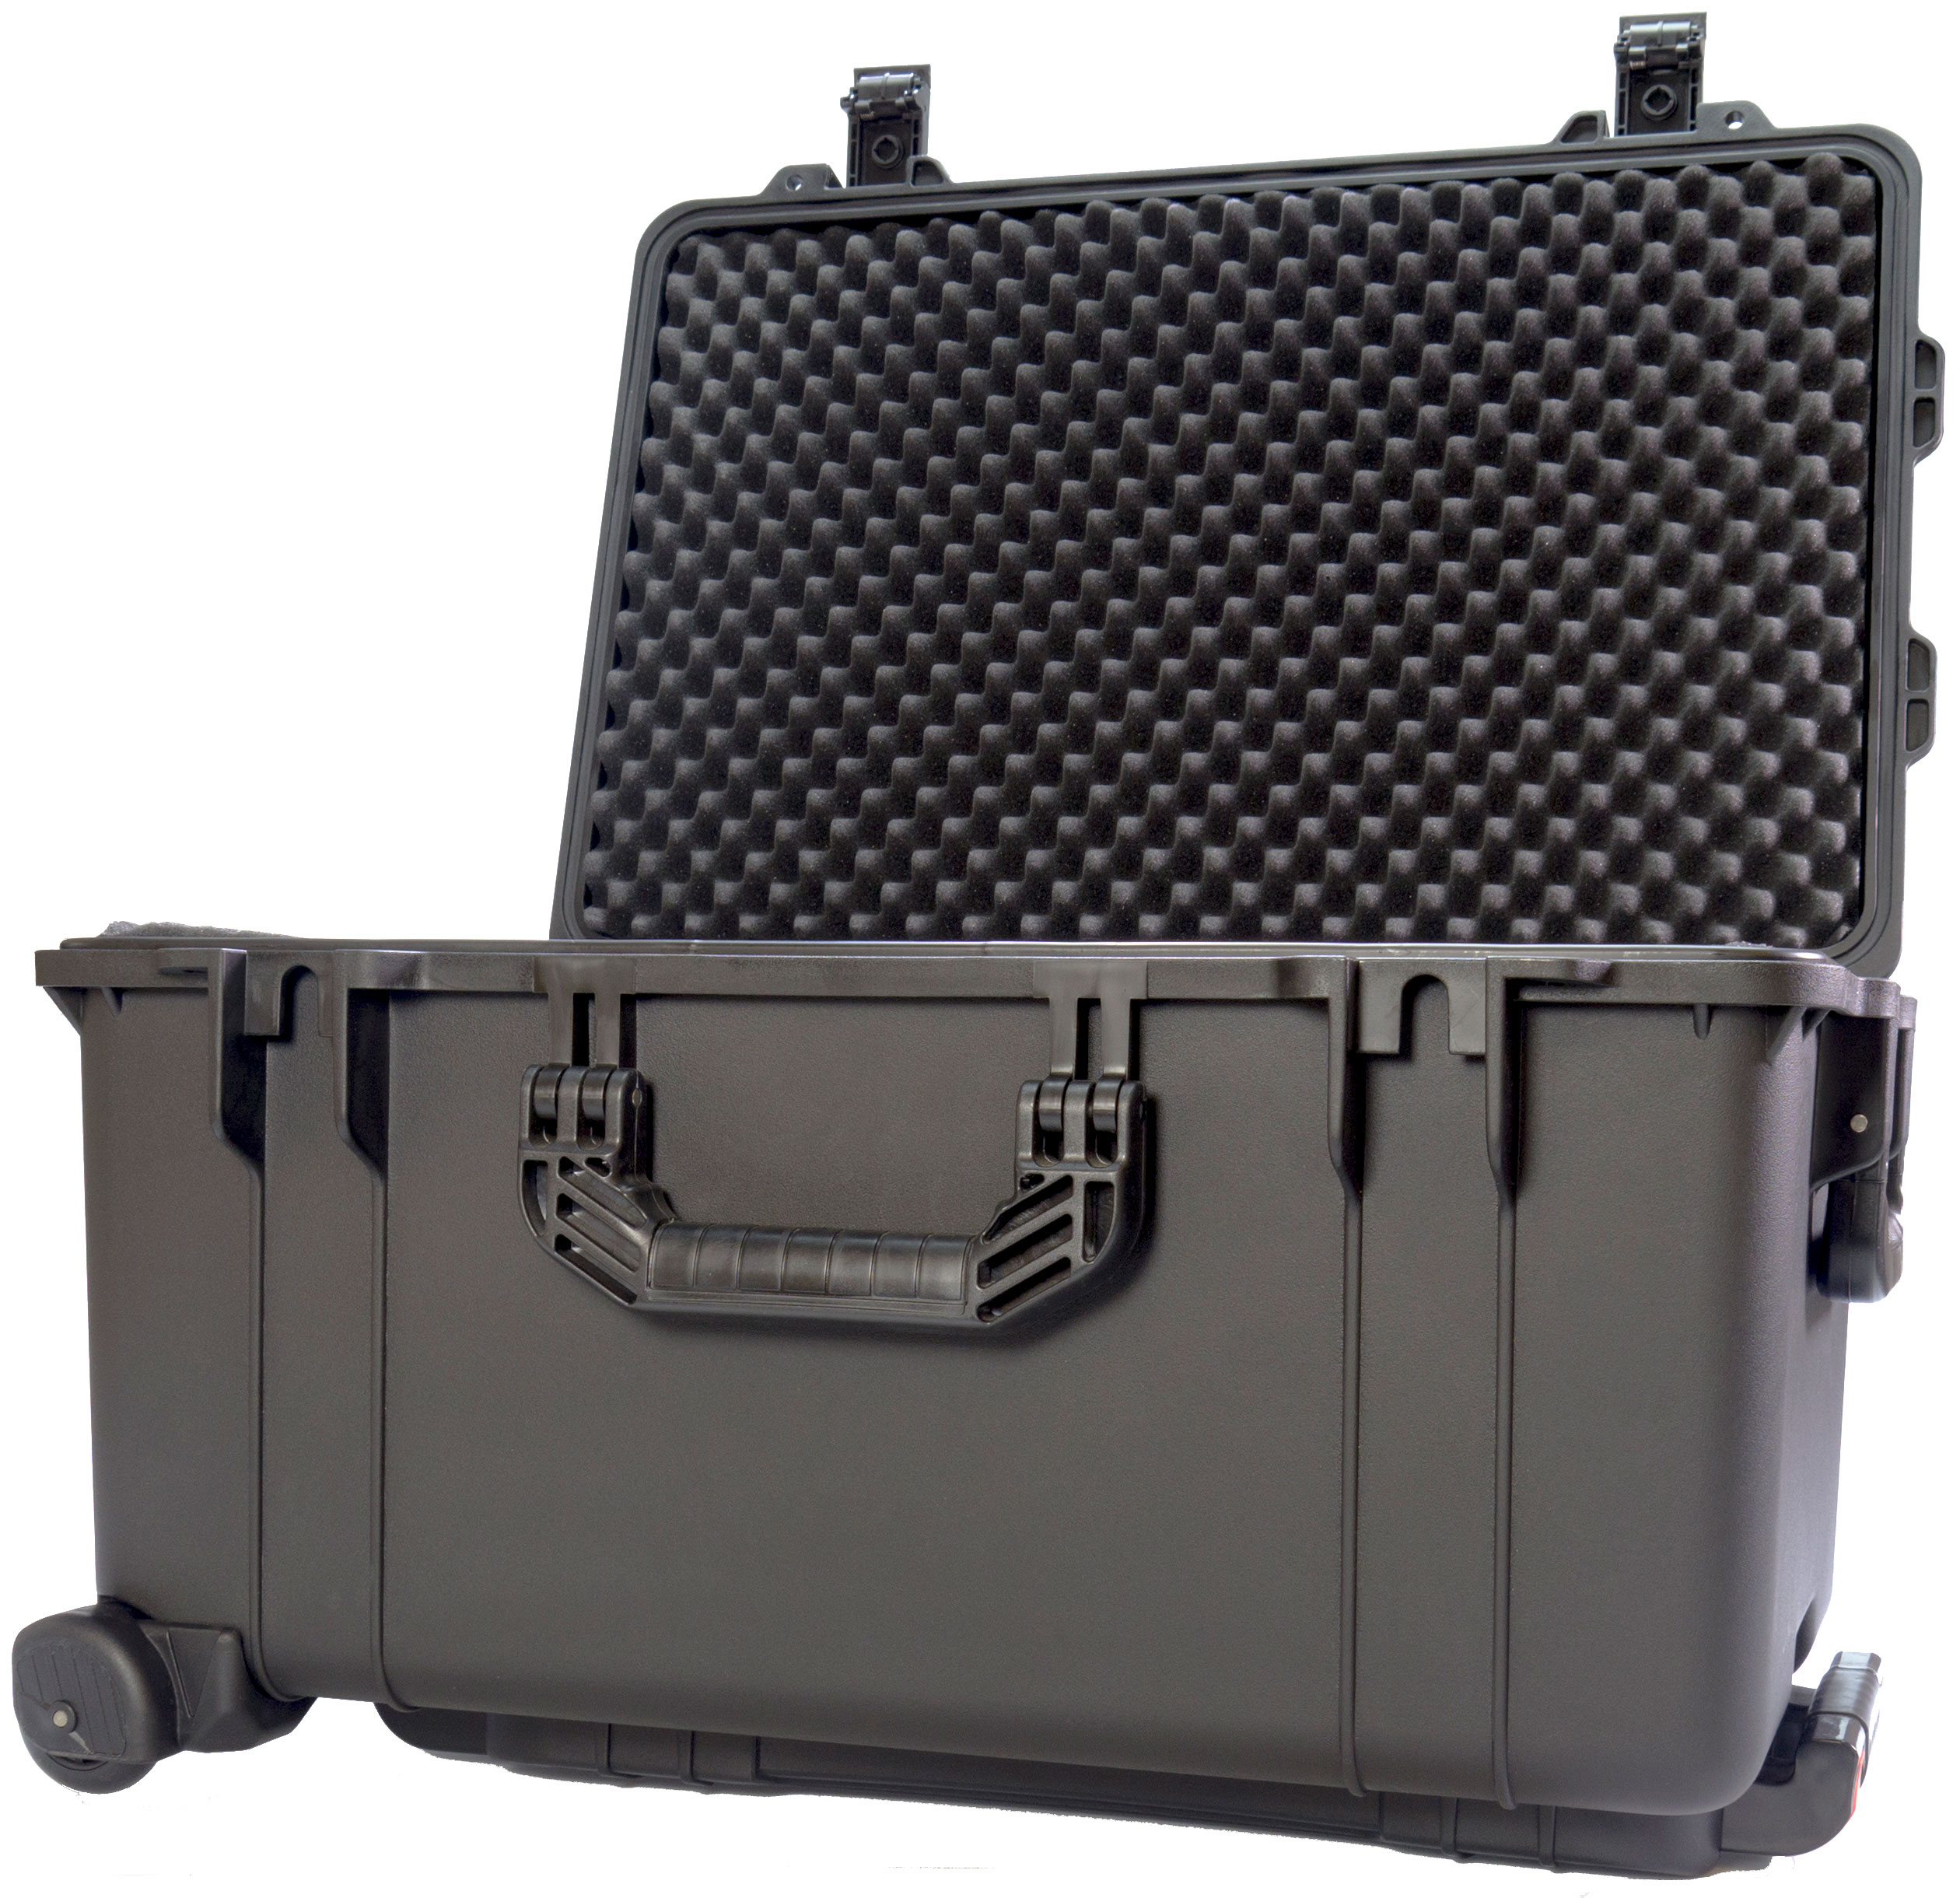 Stylish and durable - ideal for mobile productions